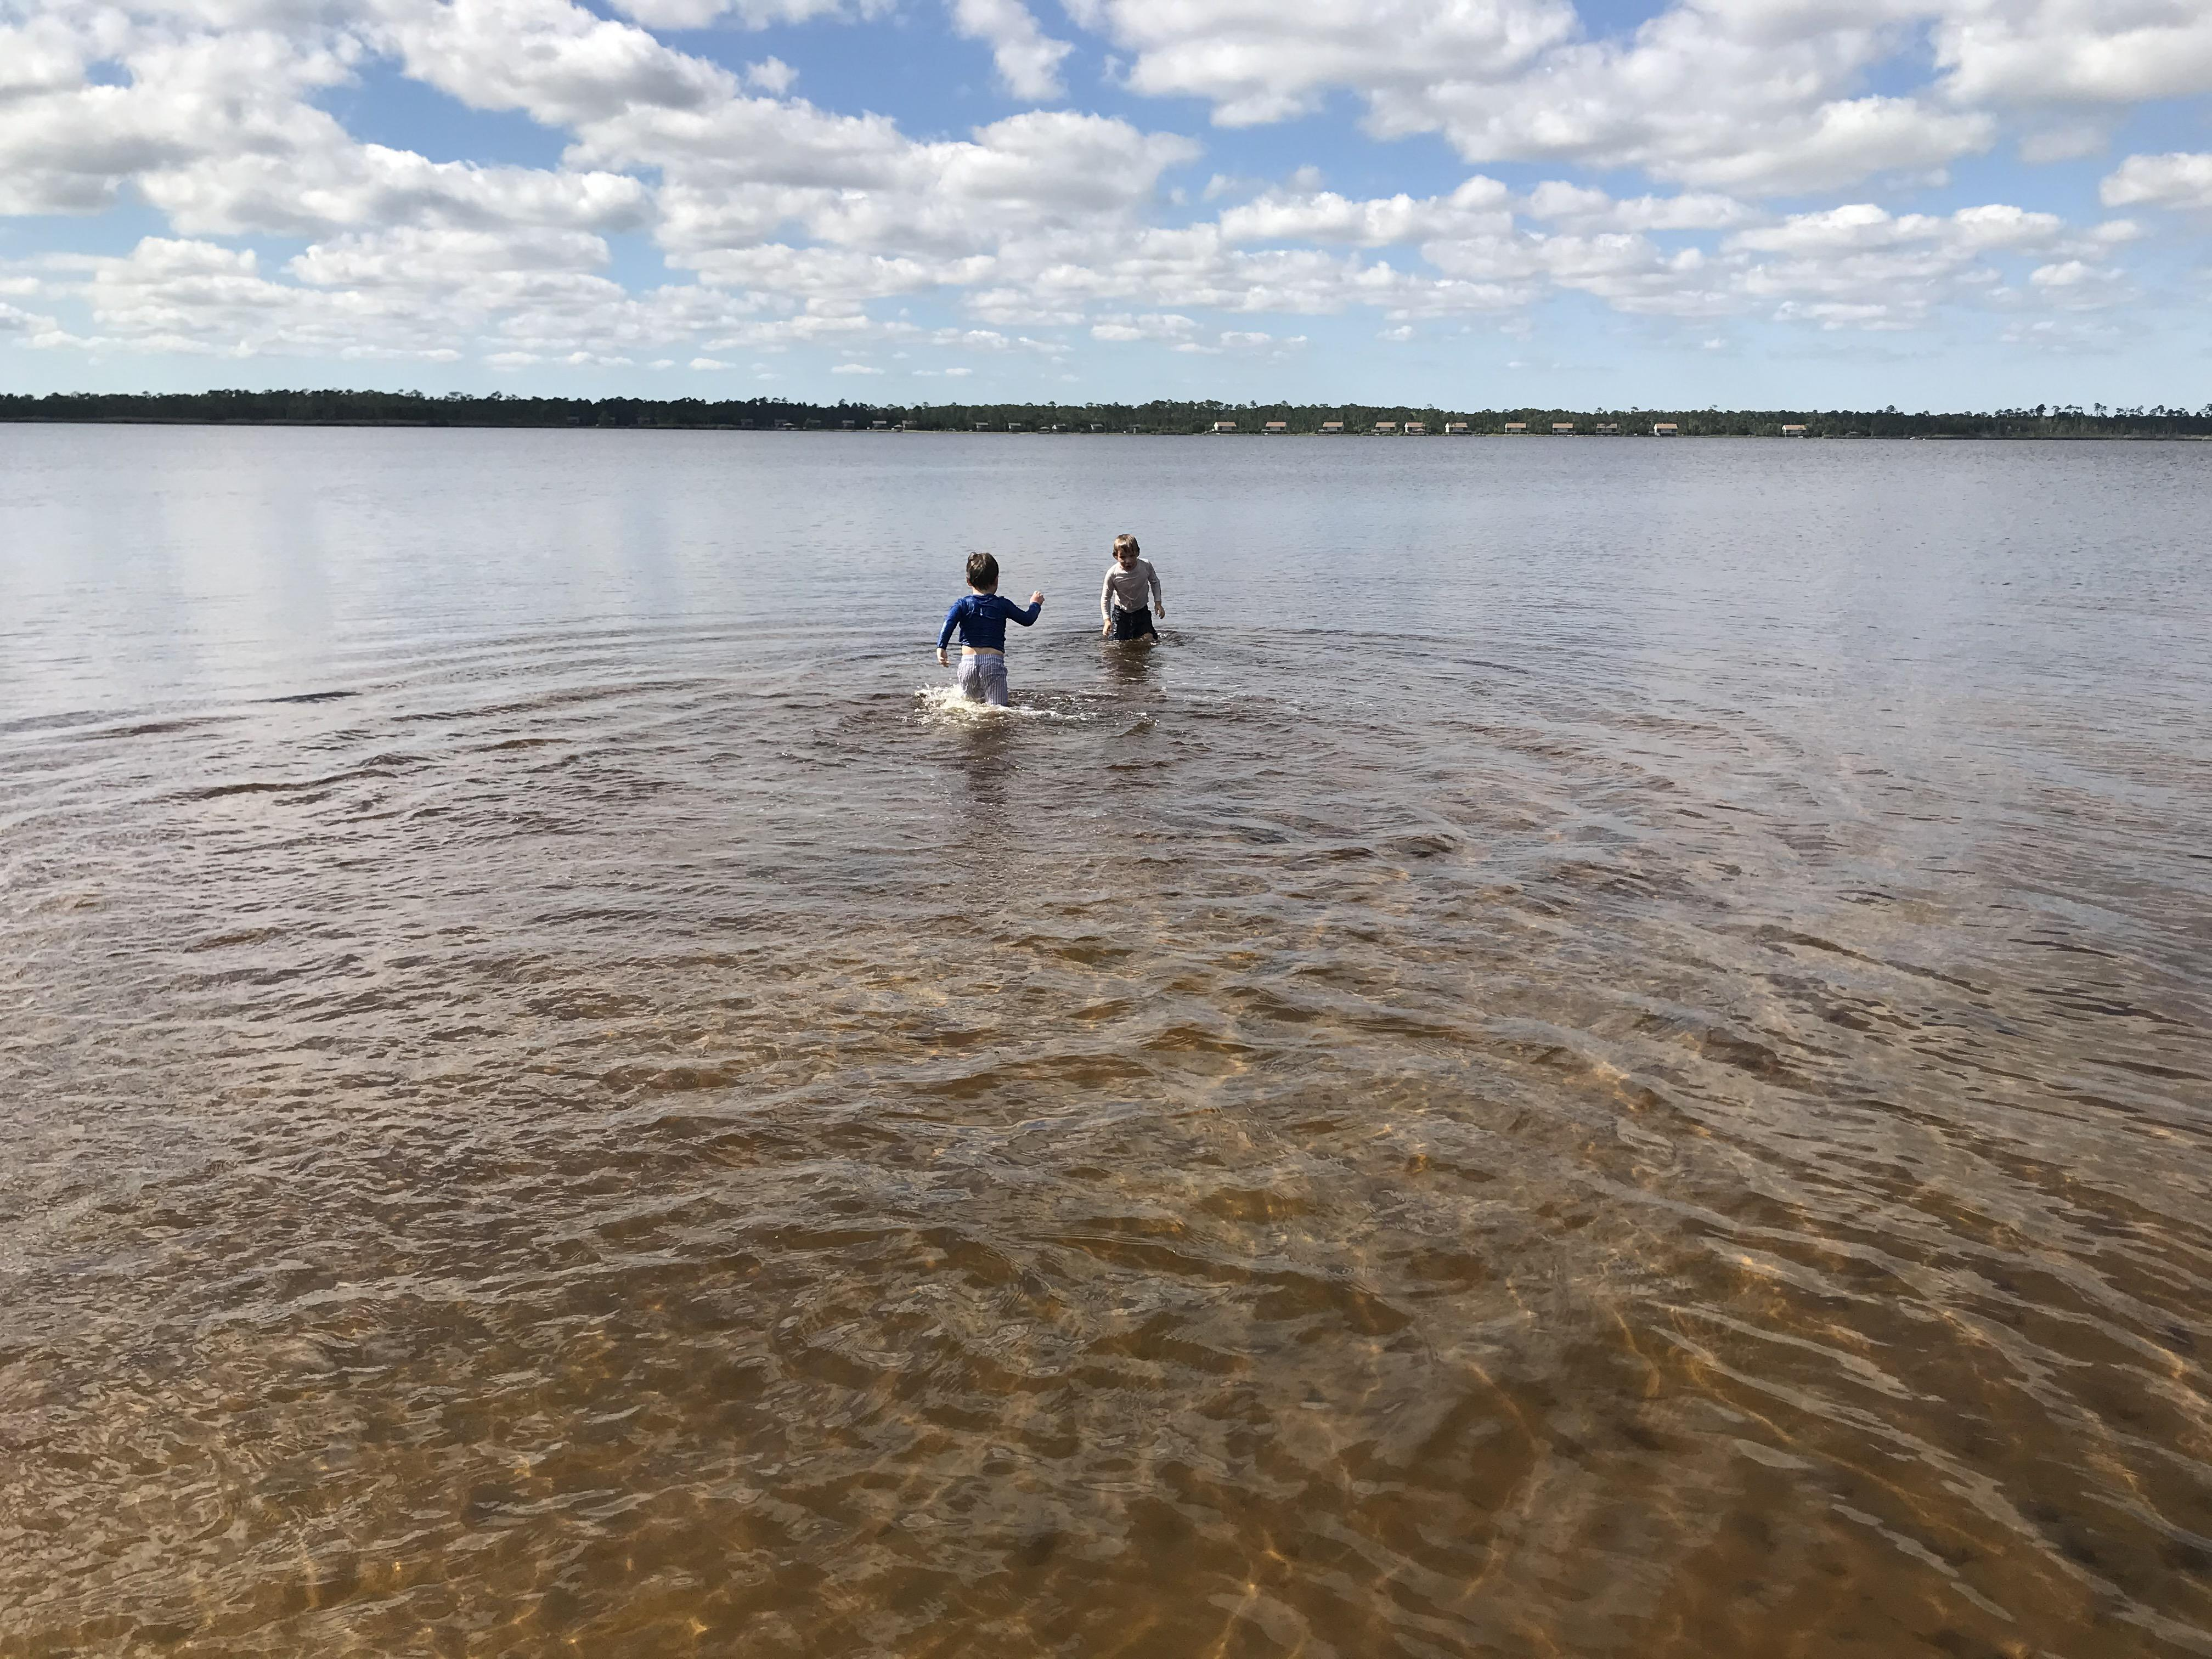 Children Play in the Water at Lake Shelby